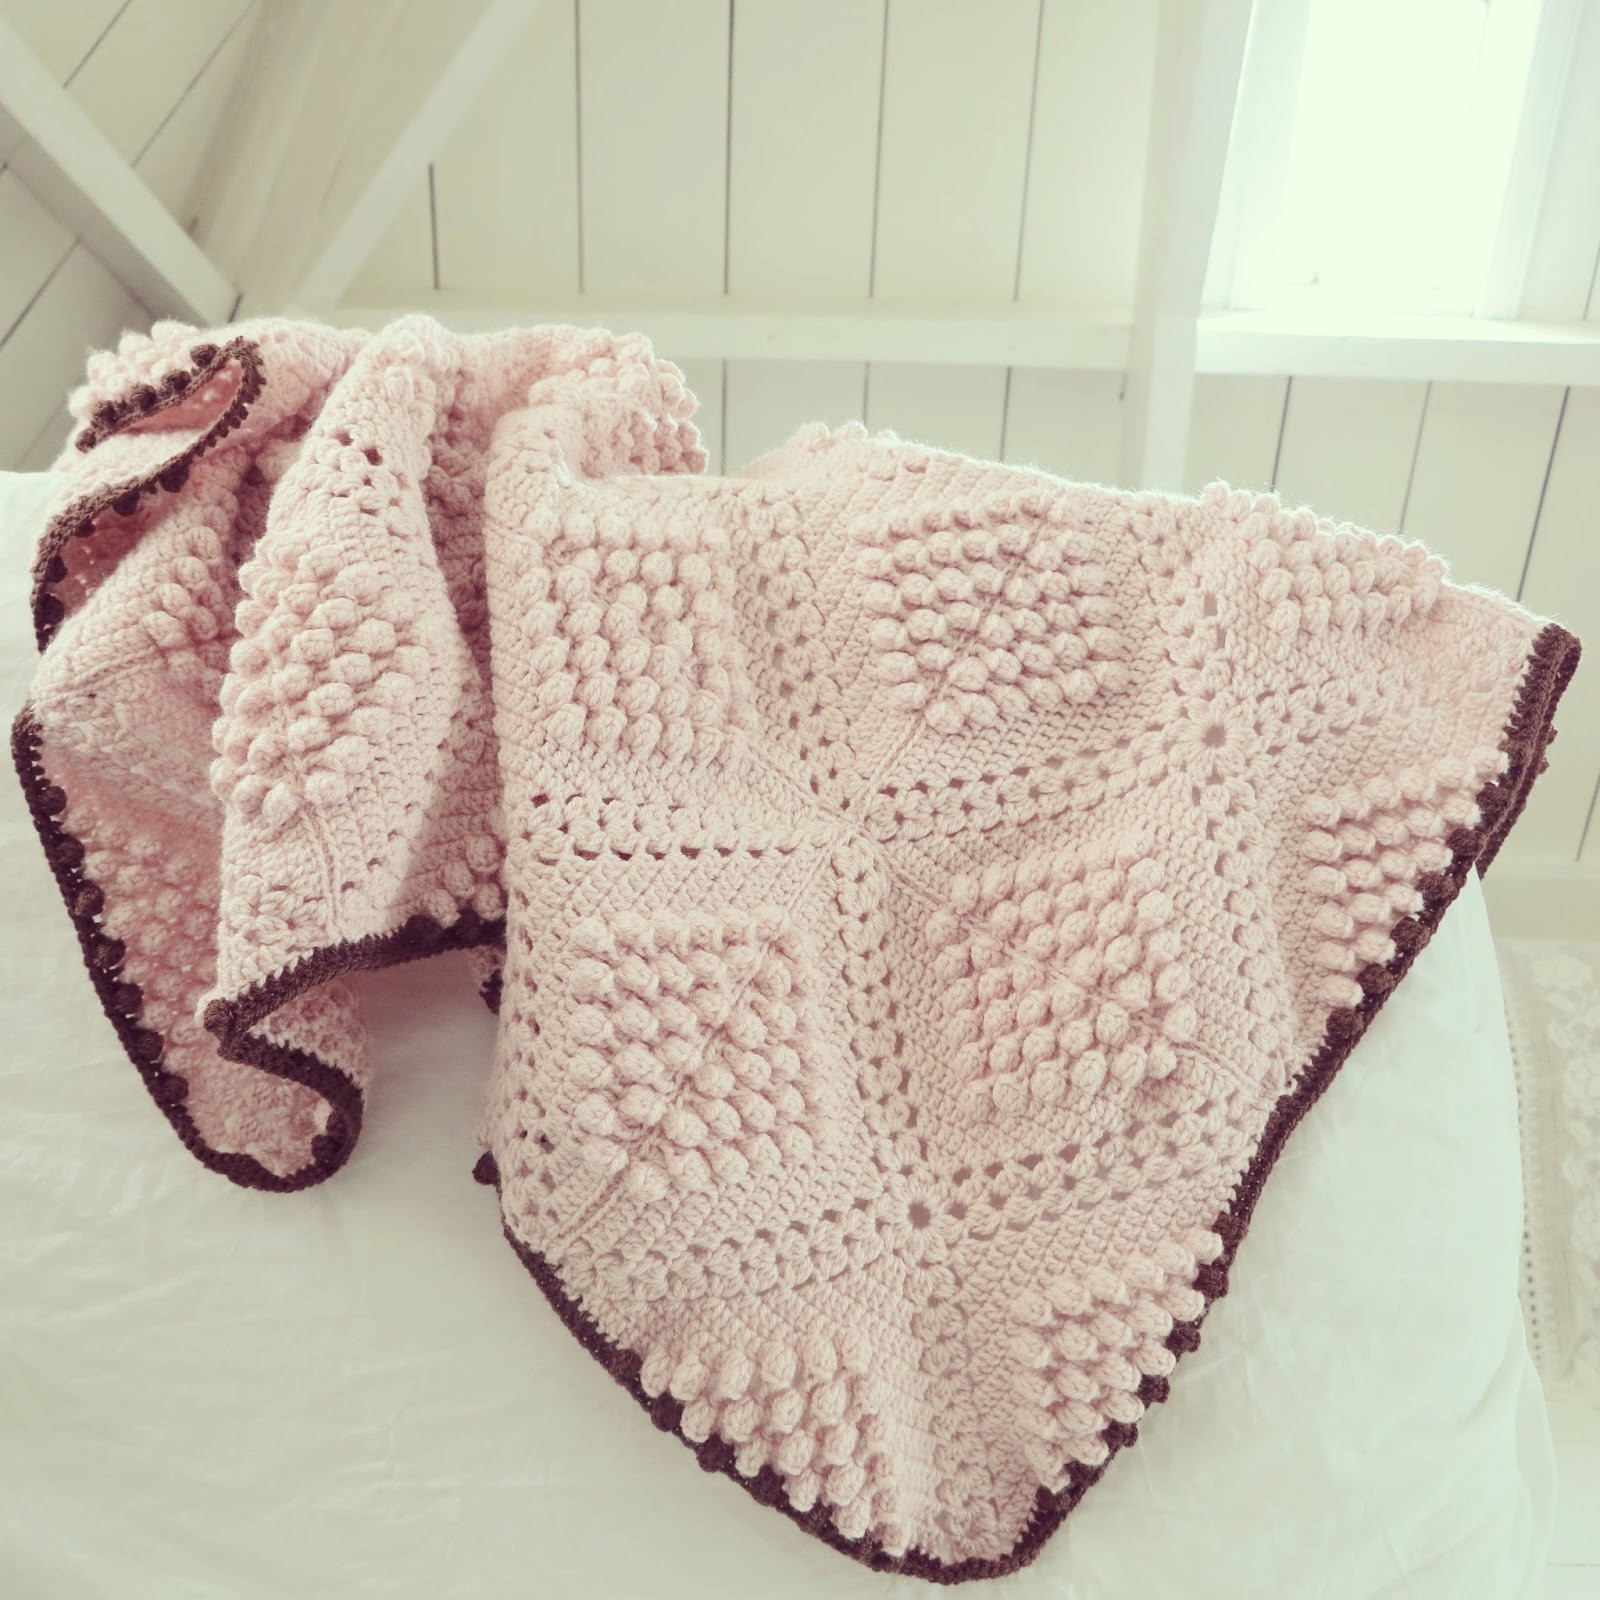 Crochet Baby Blanket Patterns Unique 10 Free Crochet Patterns & Tutorials for Baby Blankets Of Fresh 44 Models Crochet Baby Blanket Patterns